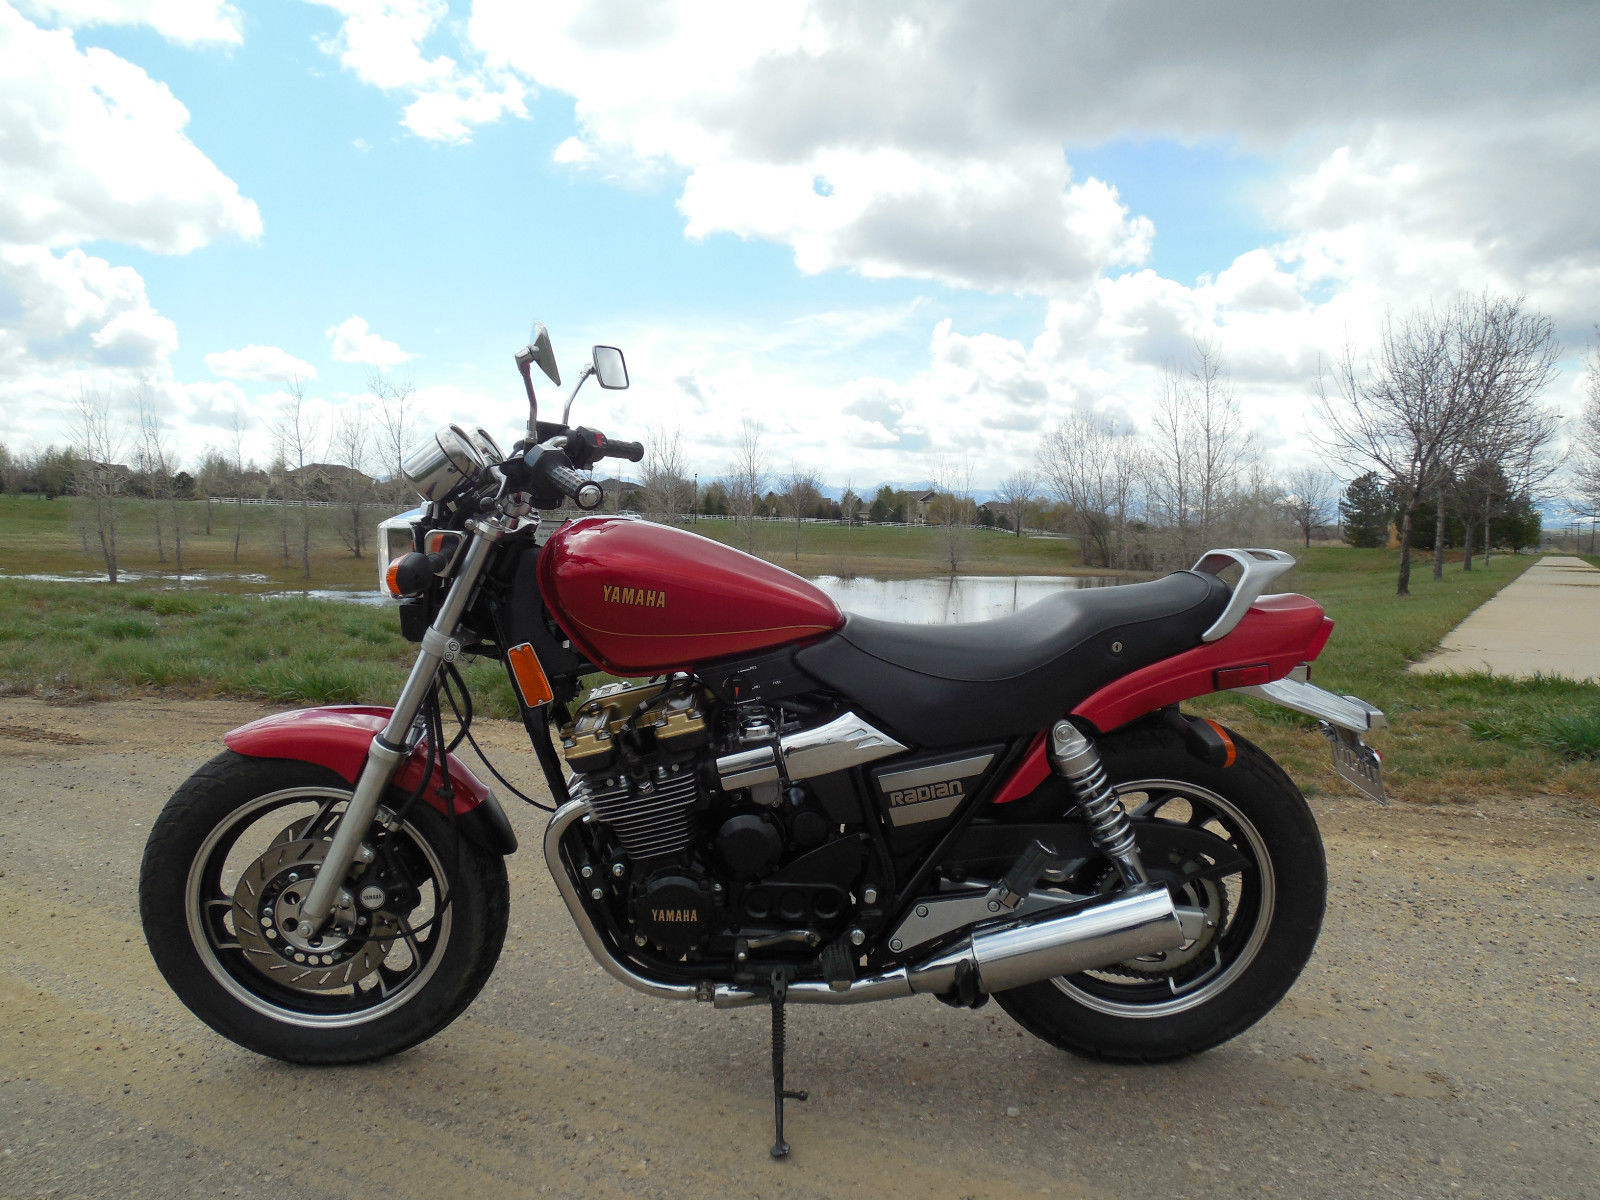 For sale my a great 1986 Yamaha radian 600 yx600 Classic